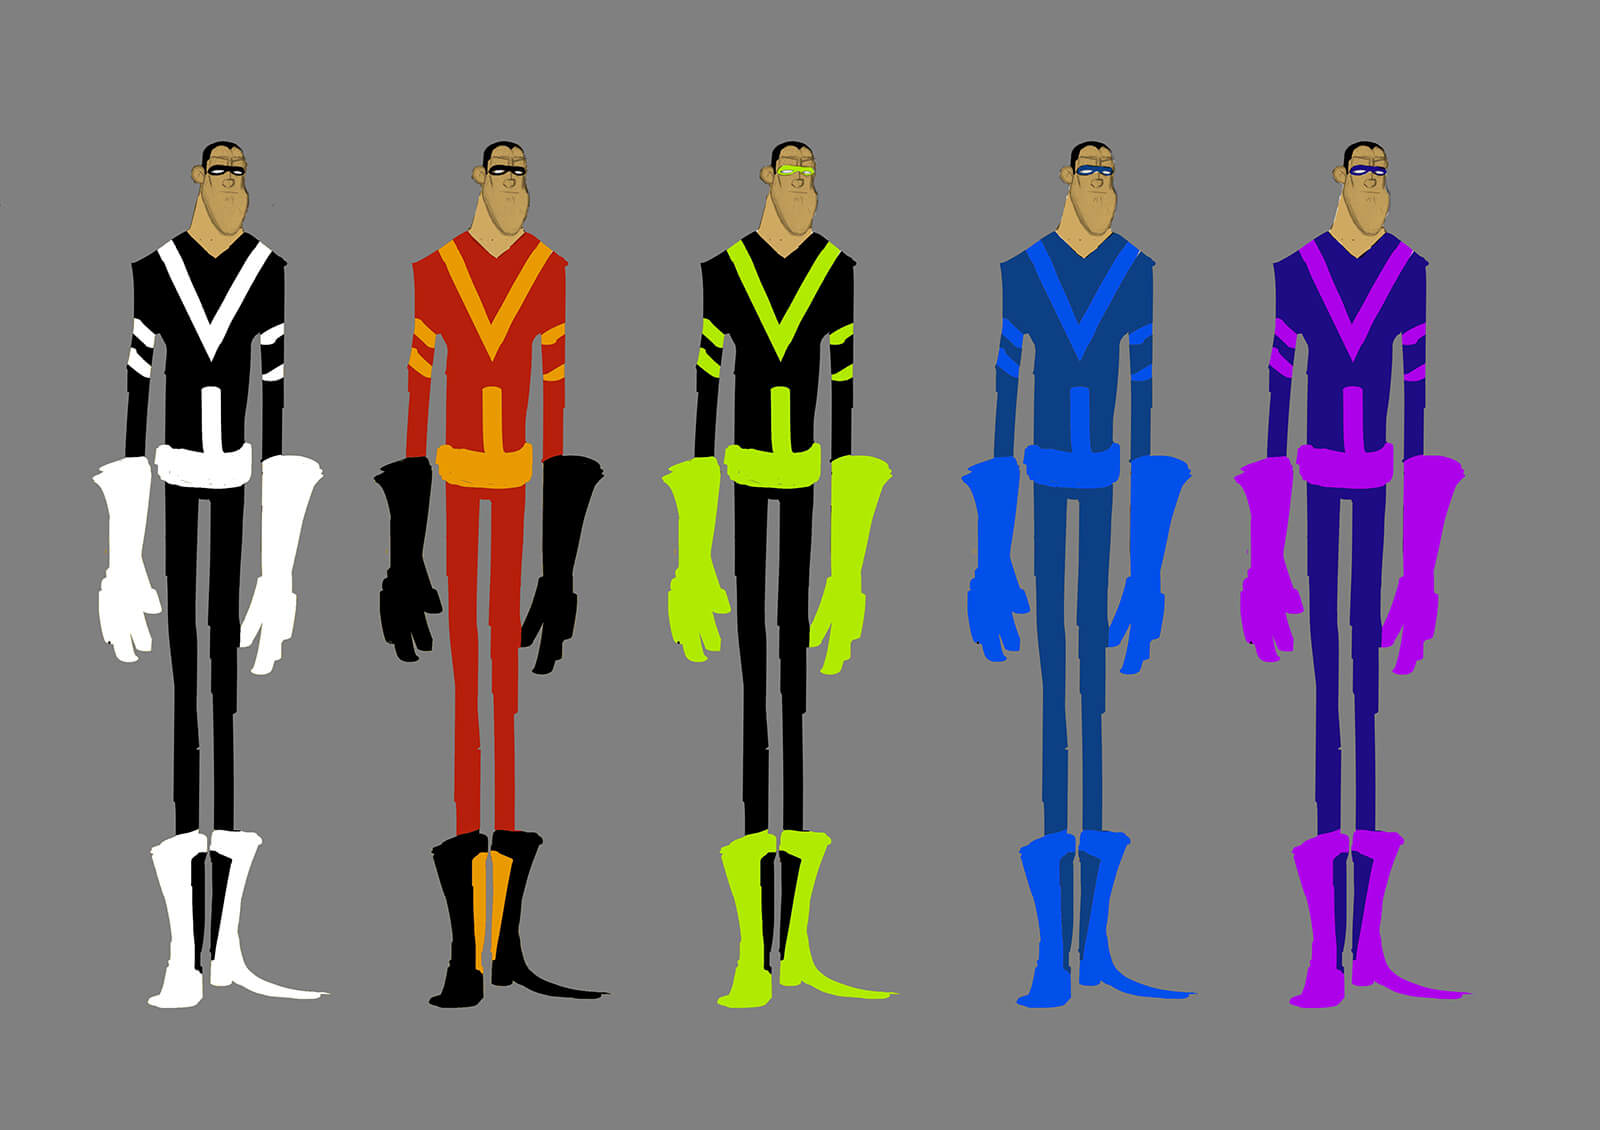 Color concept sketches or a tall, thin man in various futuristic outfits standing side to side